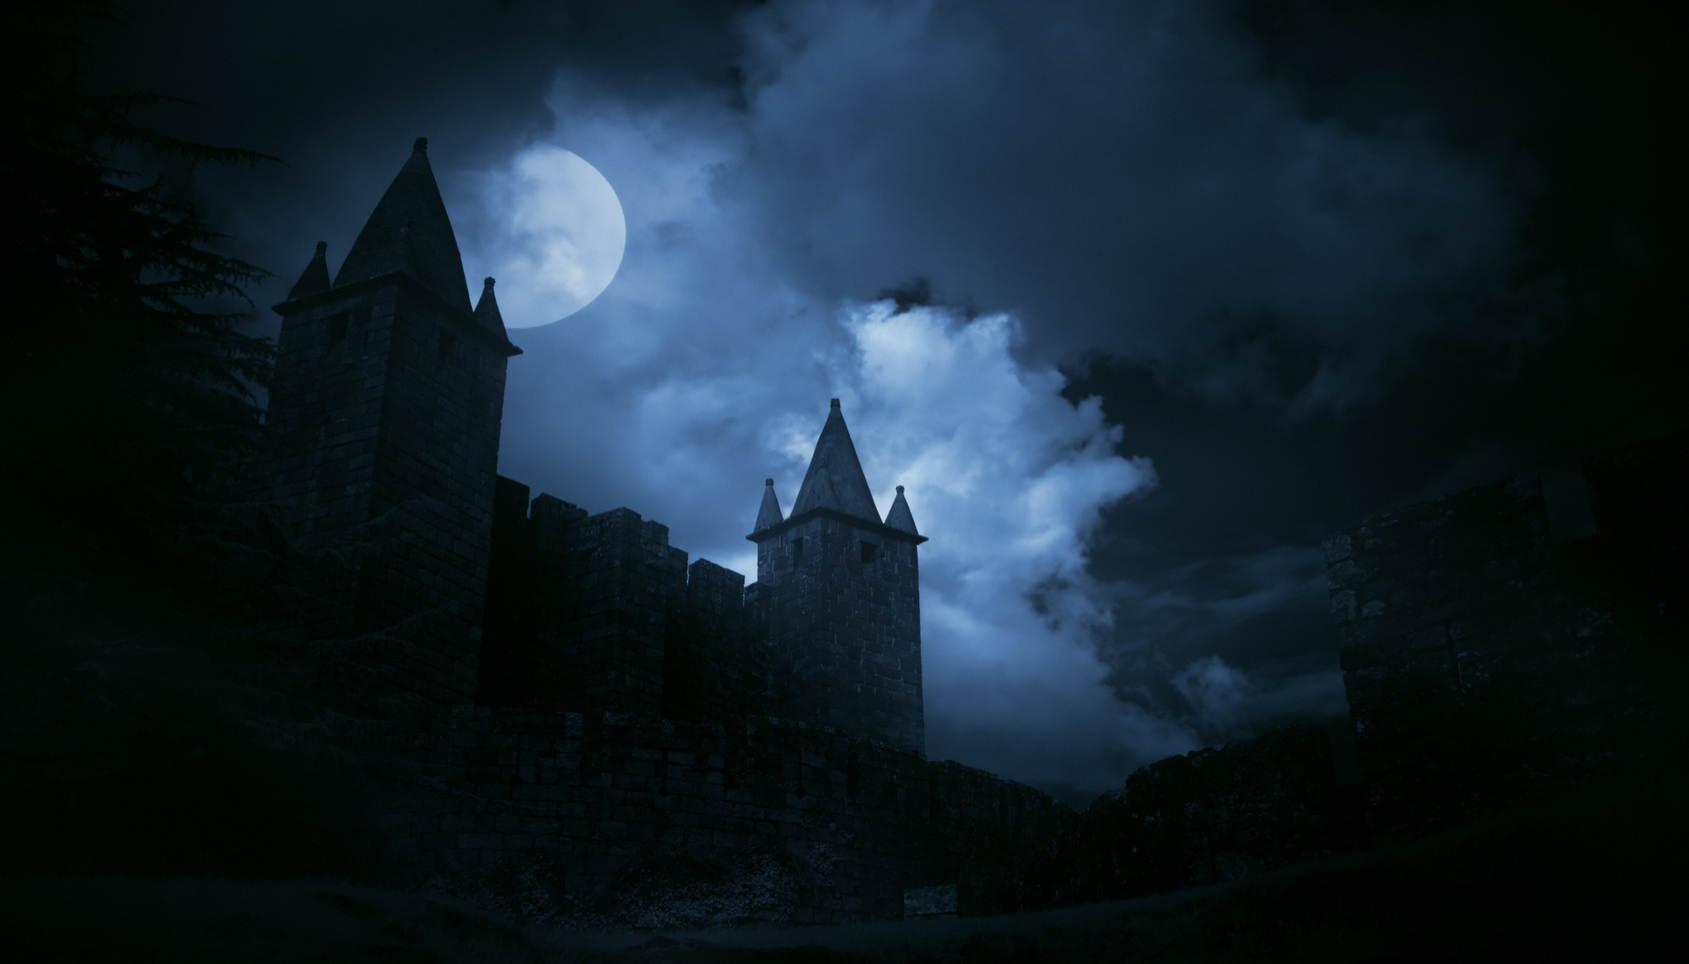 A photographic of a castle at night